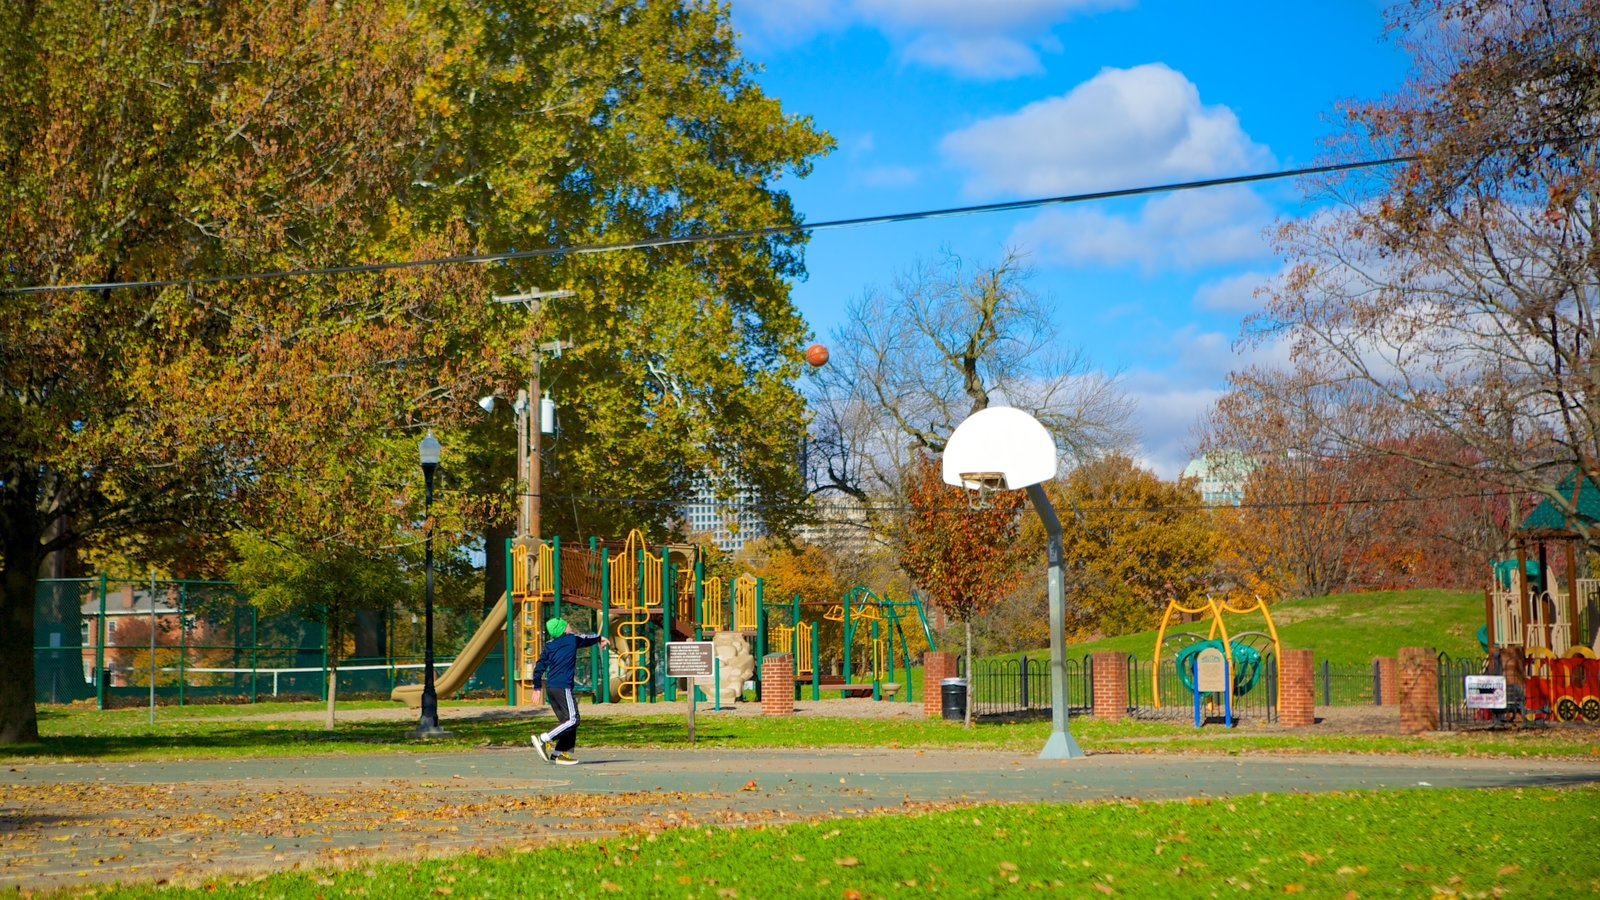 Schiller Park showing a playground and a park as well as an individual child